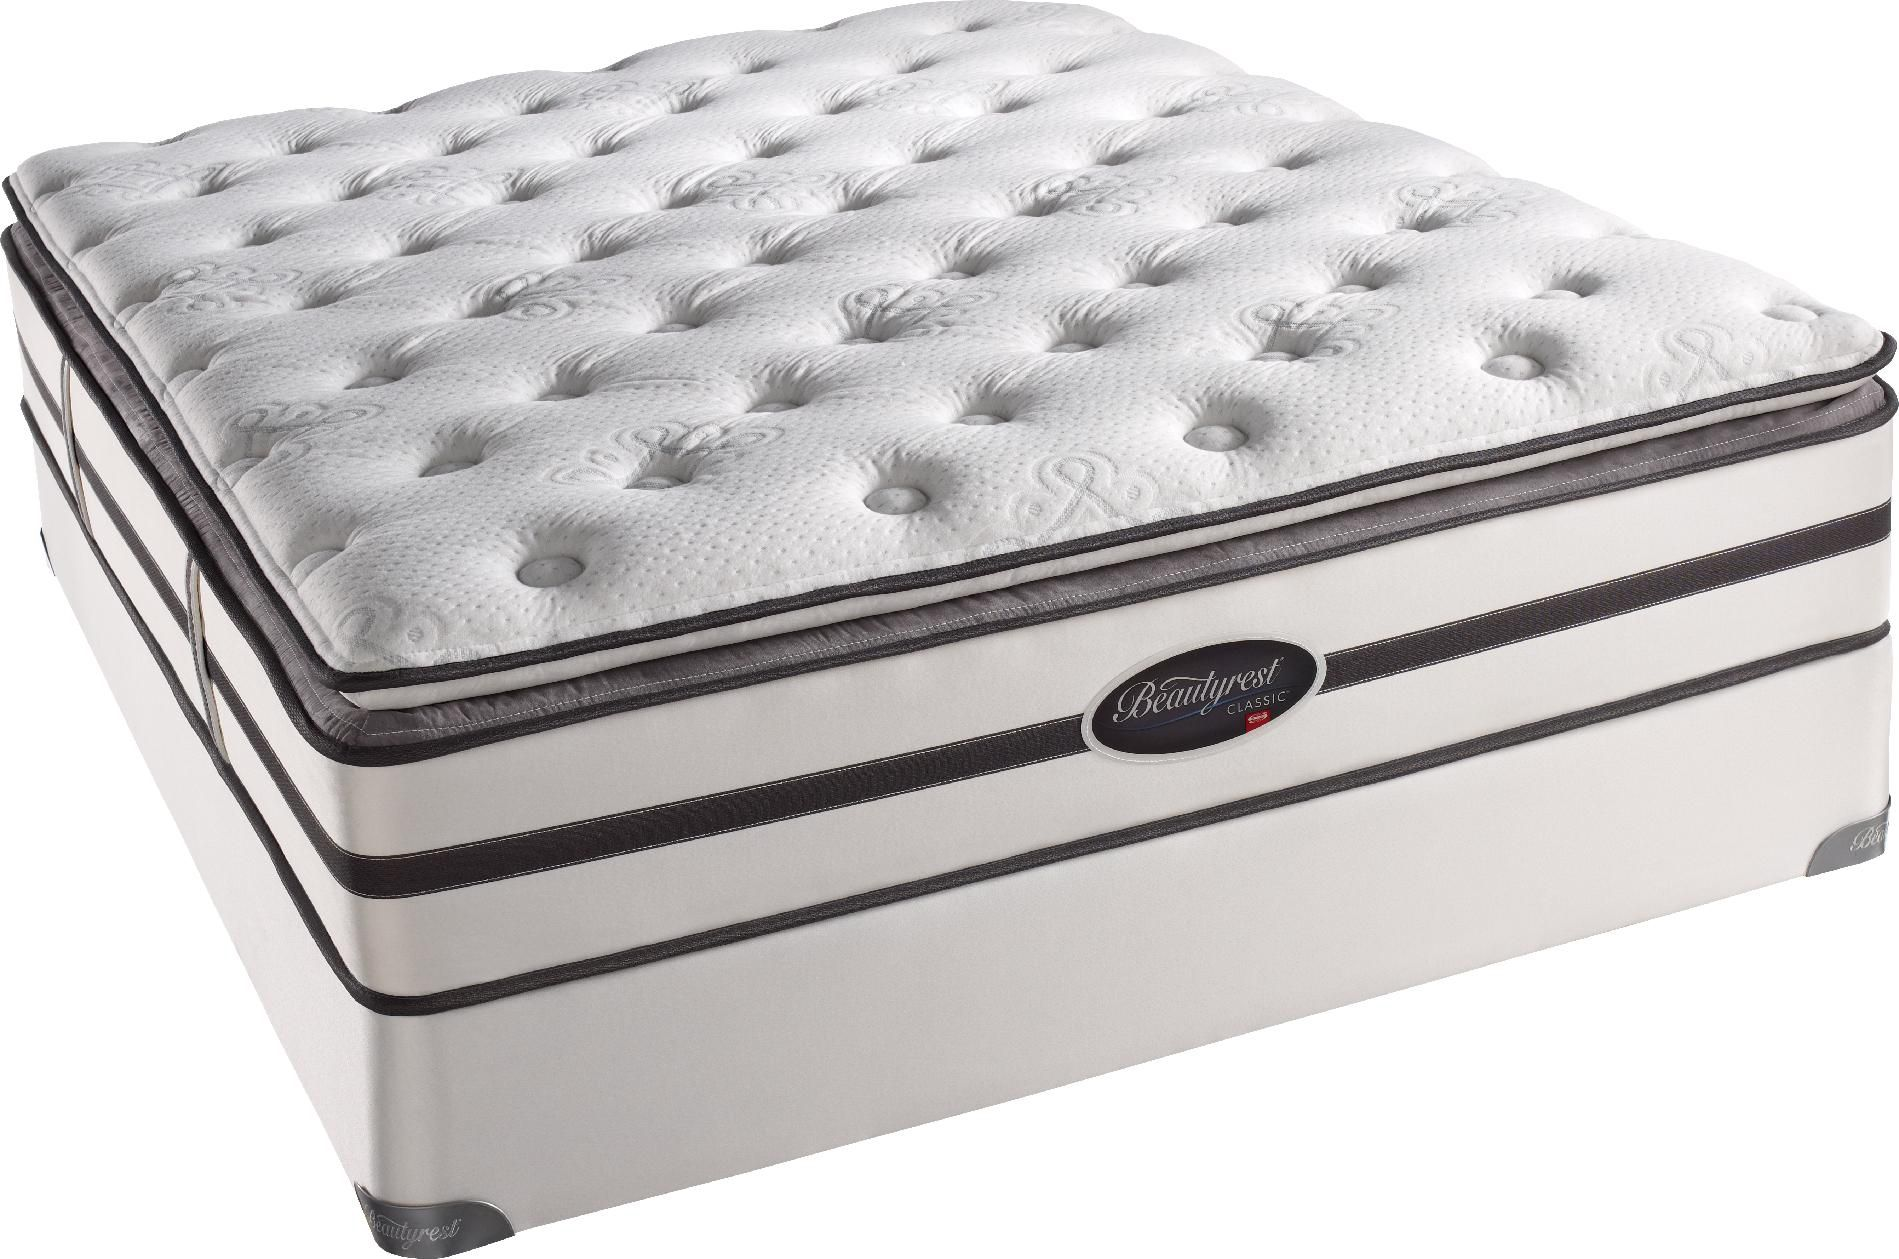 Glover Park Firm Pillowtop Queen mattress